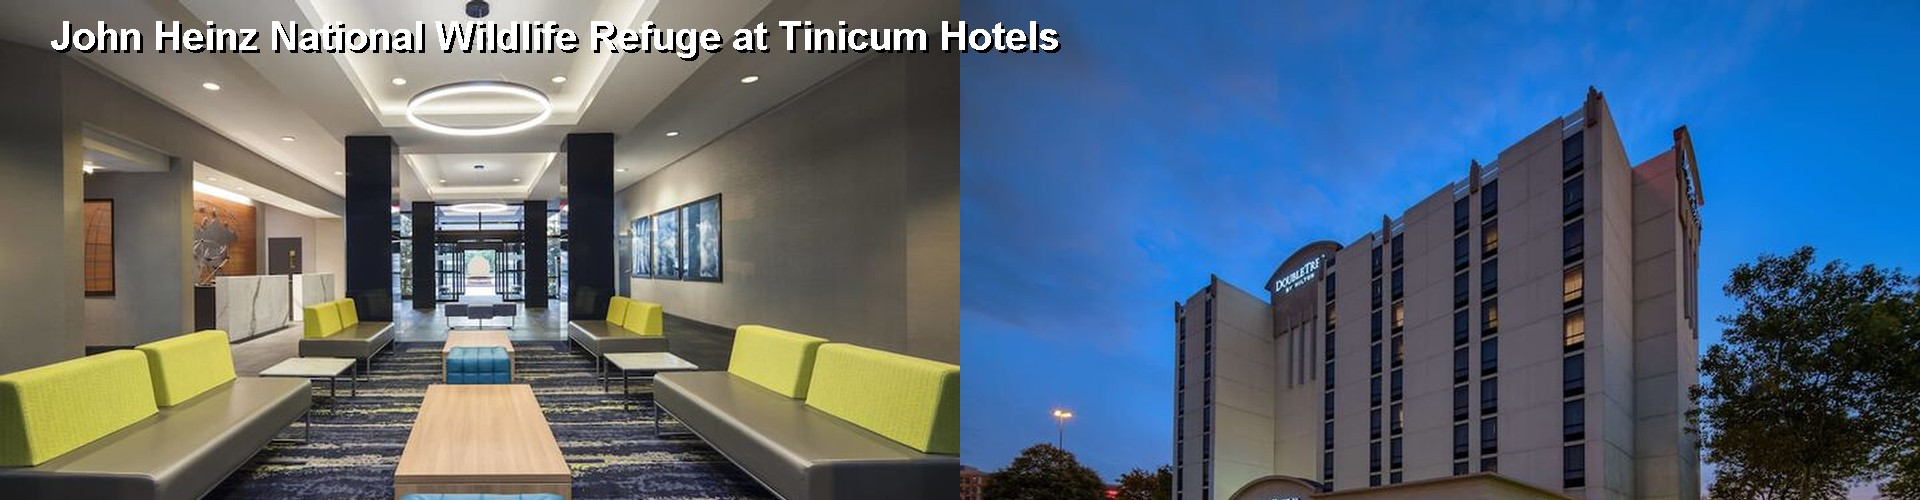 5 Best Hotels near John Heinz National Wildlife Refuge at Tinicum